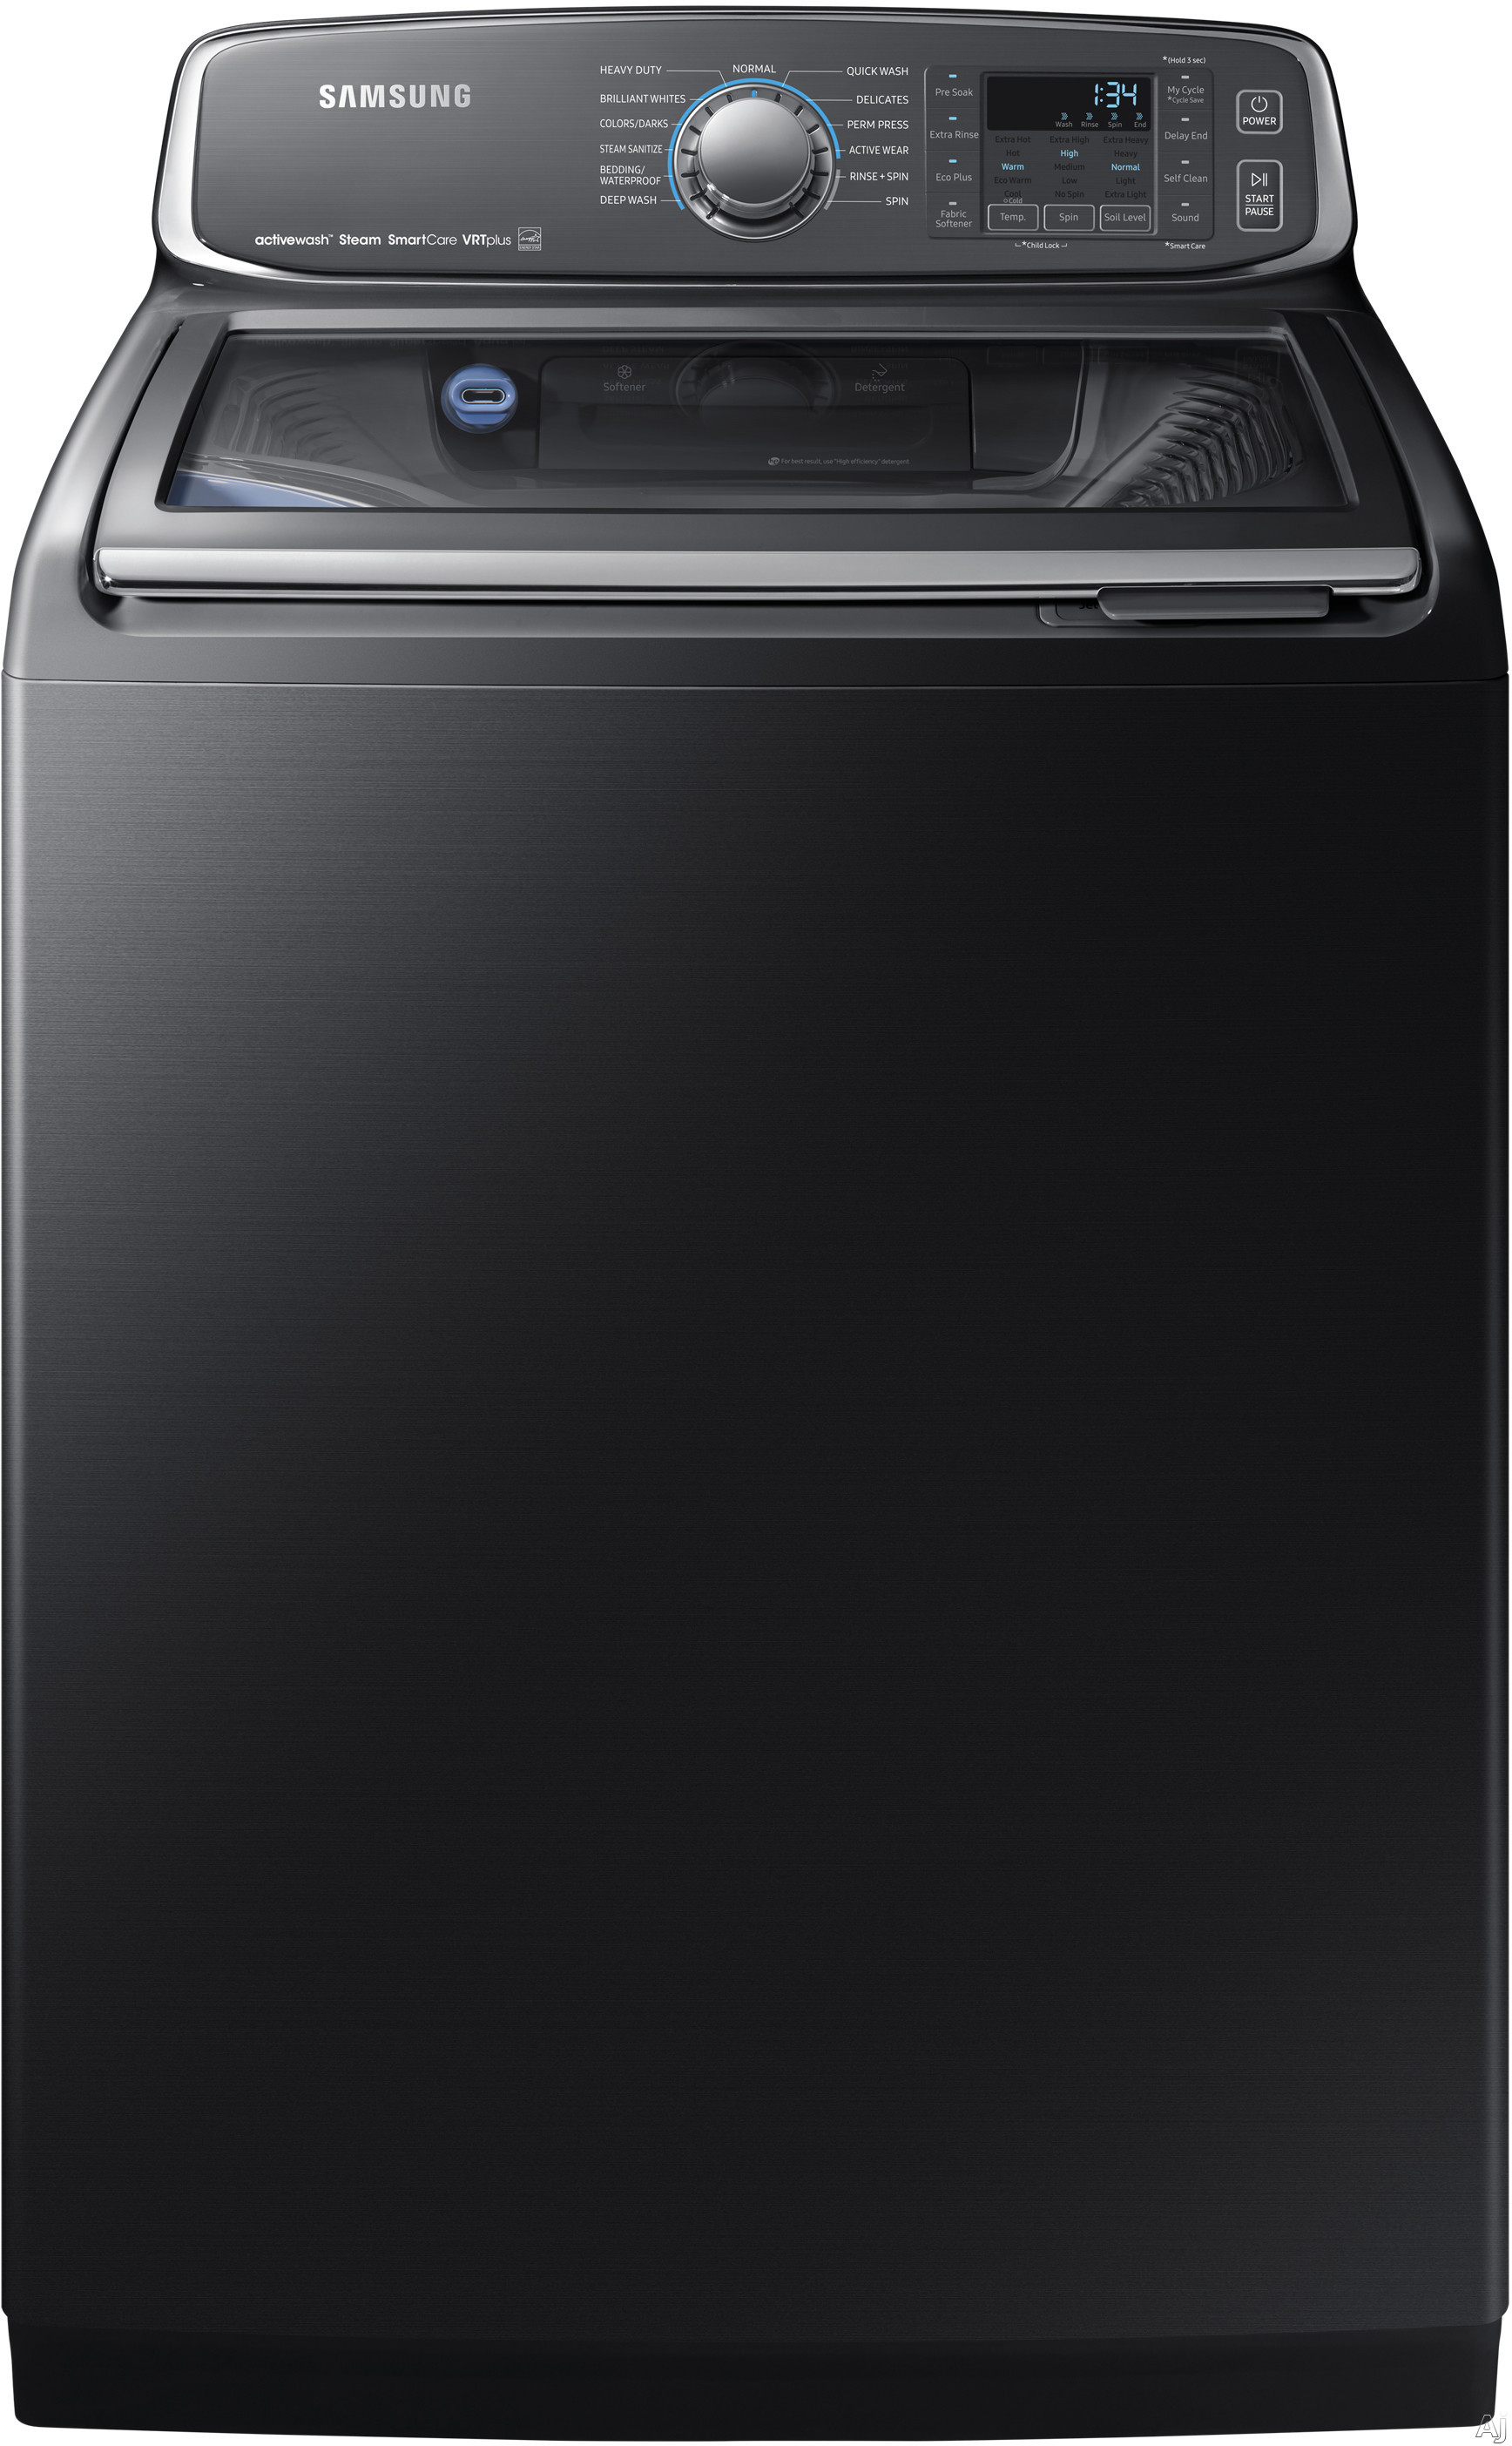 Samsung WA52M7750AV 27 Inch Top Load Washer with activewash™ Sink, Steam, Self Clean, 13 Wash Cycles, 3-Tray Dispenser, Smart Care, VRT Plus™ Technology, ENERGY STAR® and 5.2 cu. ft. Capacity: Black Stainless Steel WA52M7750AV